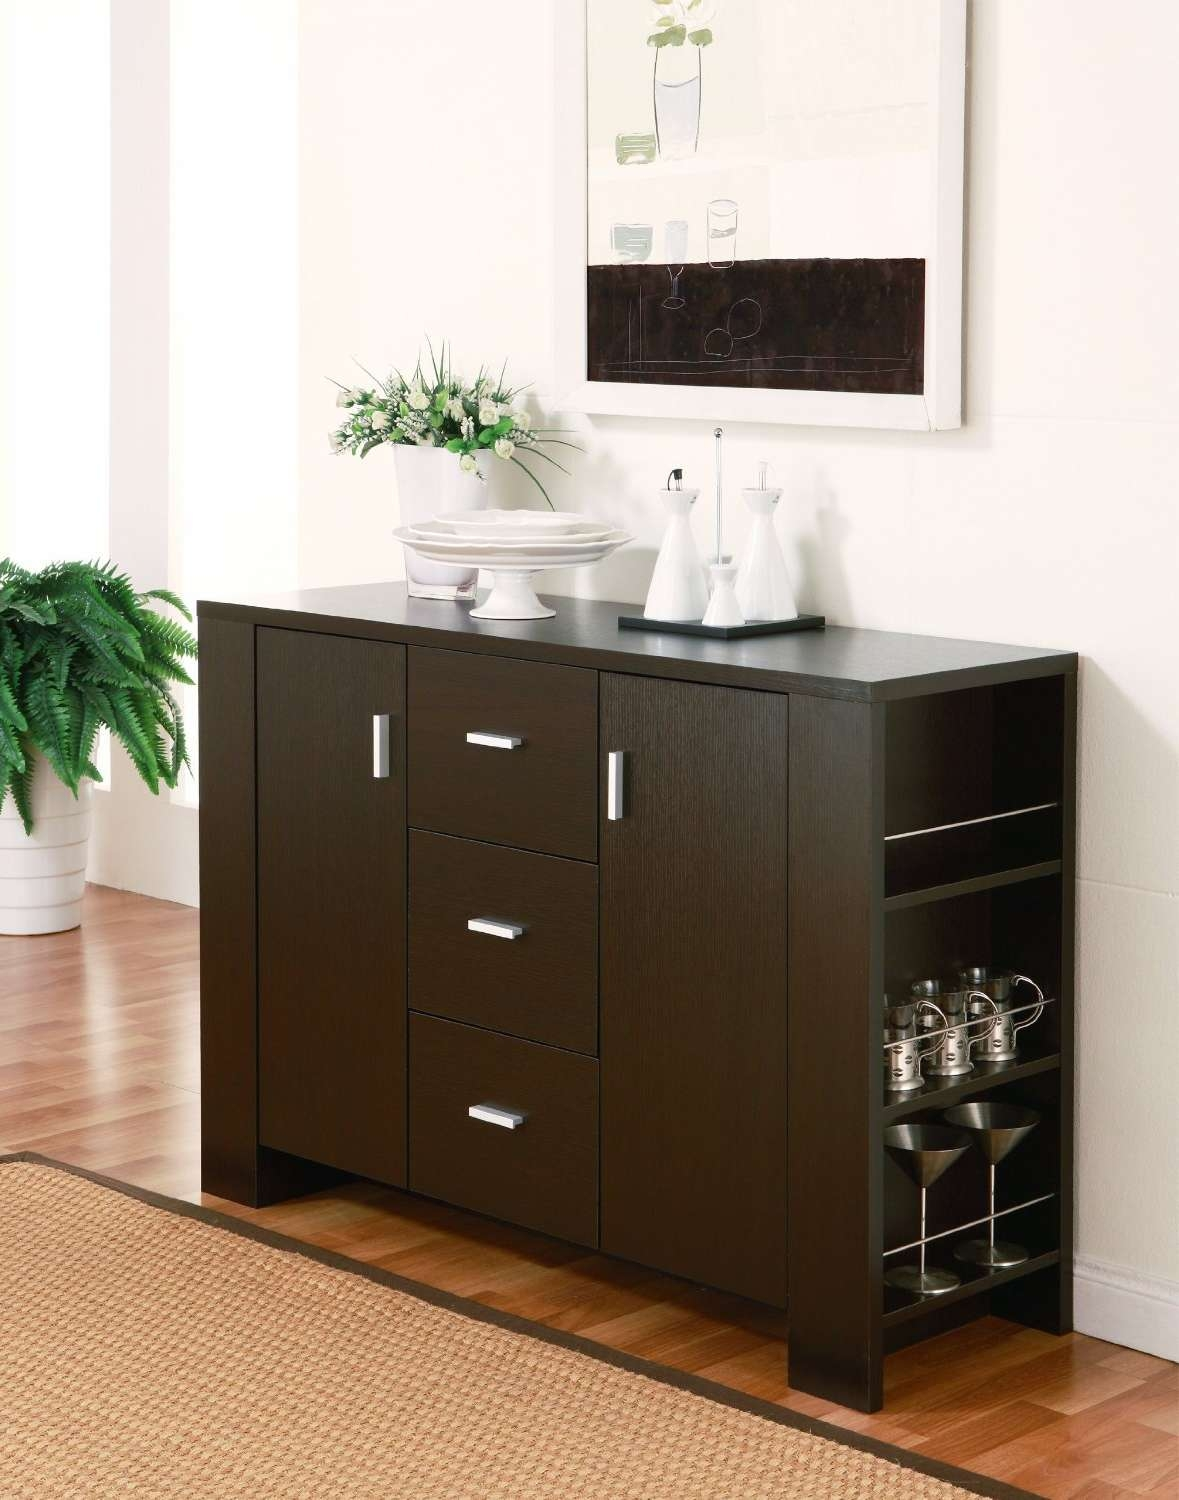 Graceful Room Sideboards Oak Home Design Ideas Room Sideboards Oak Pertaining To Dining Room Servers And Sideboards (View 11 of 20)